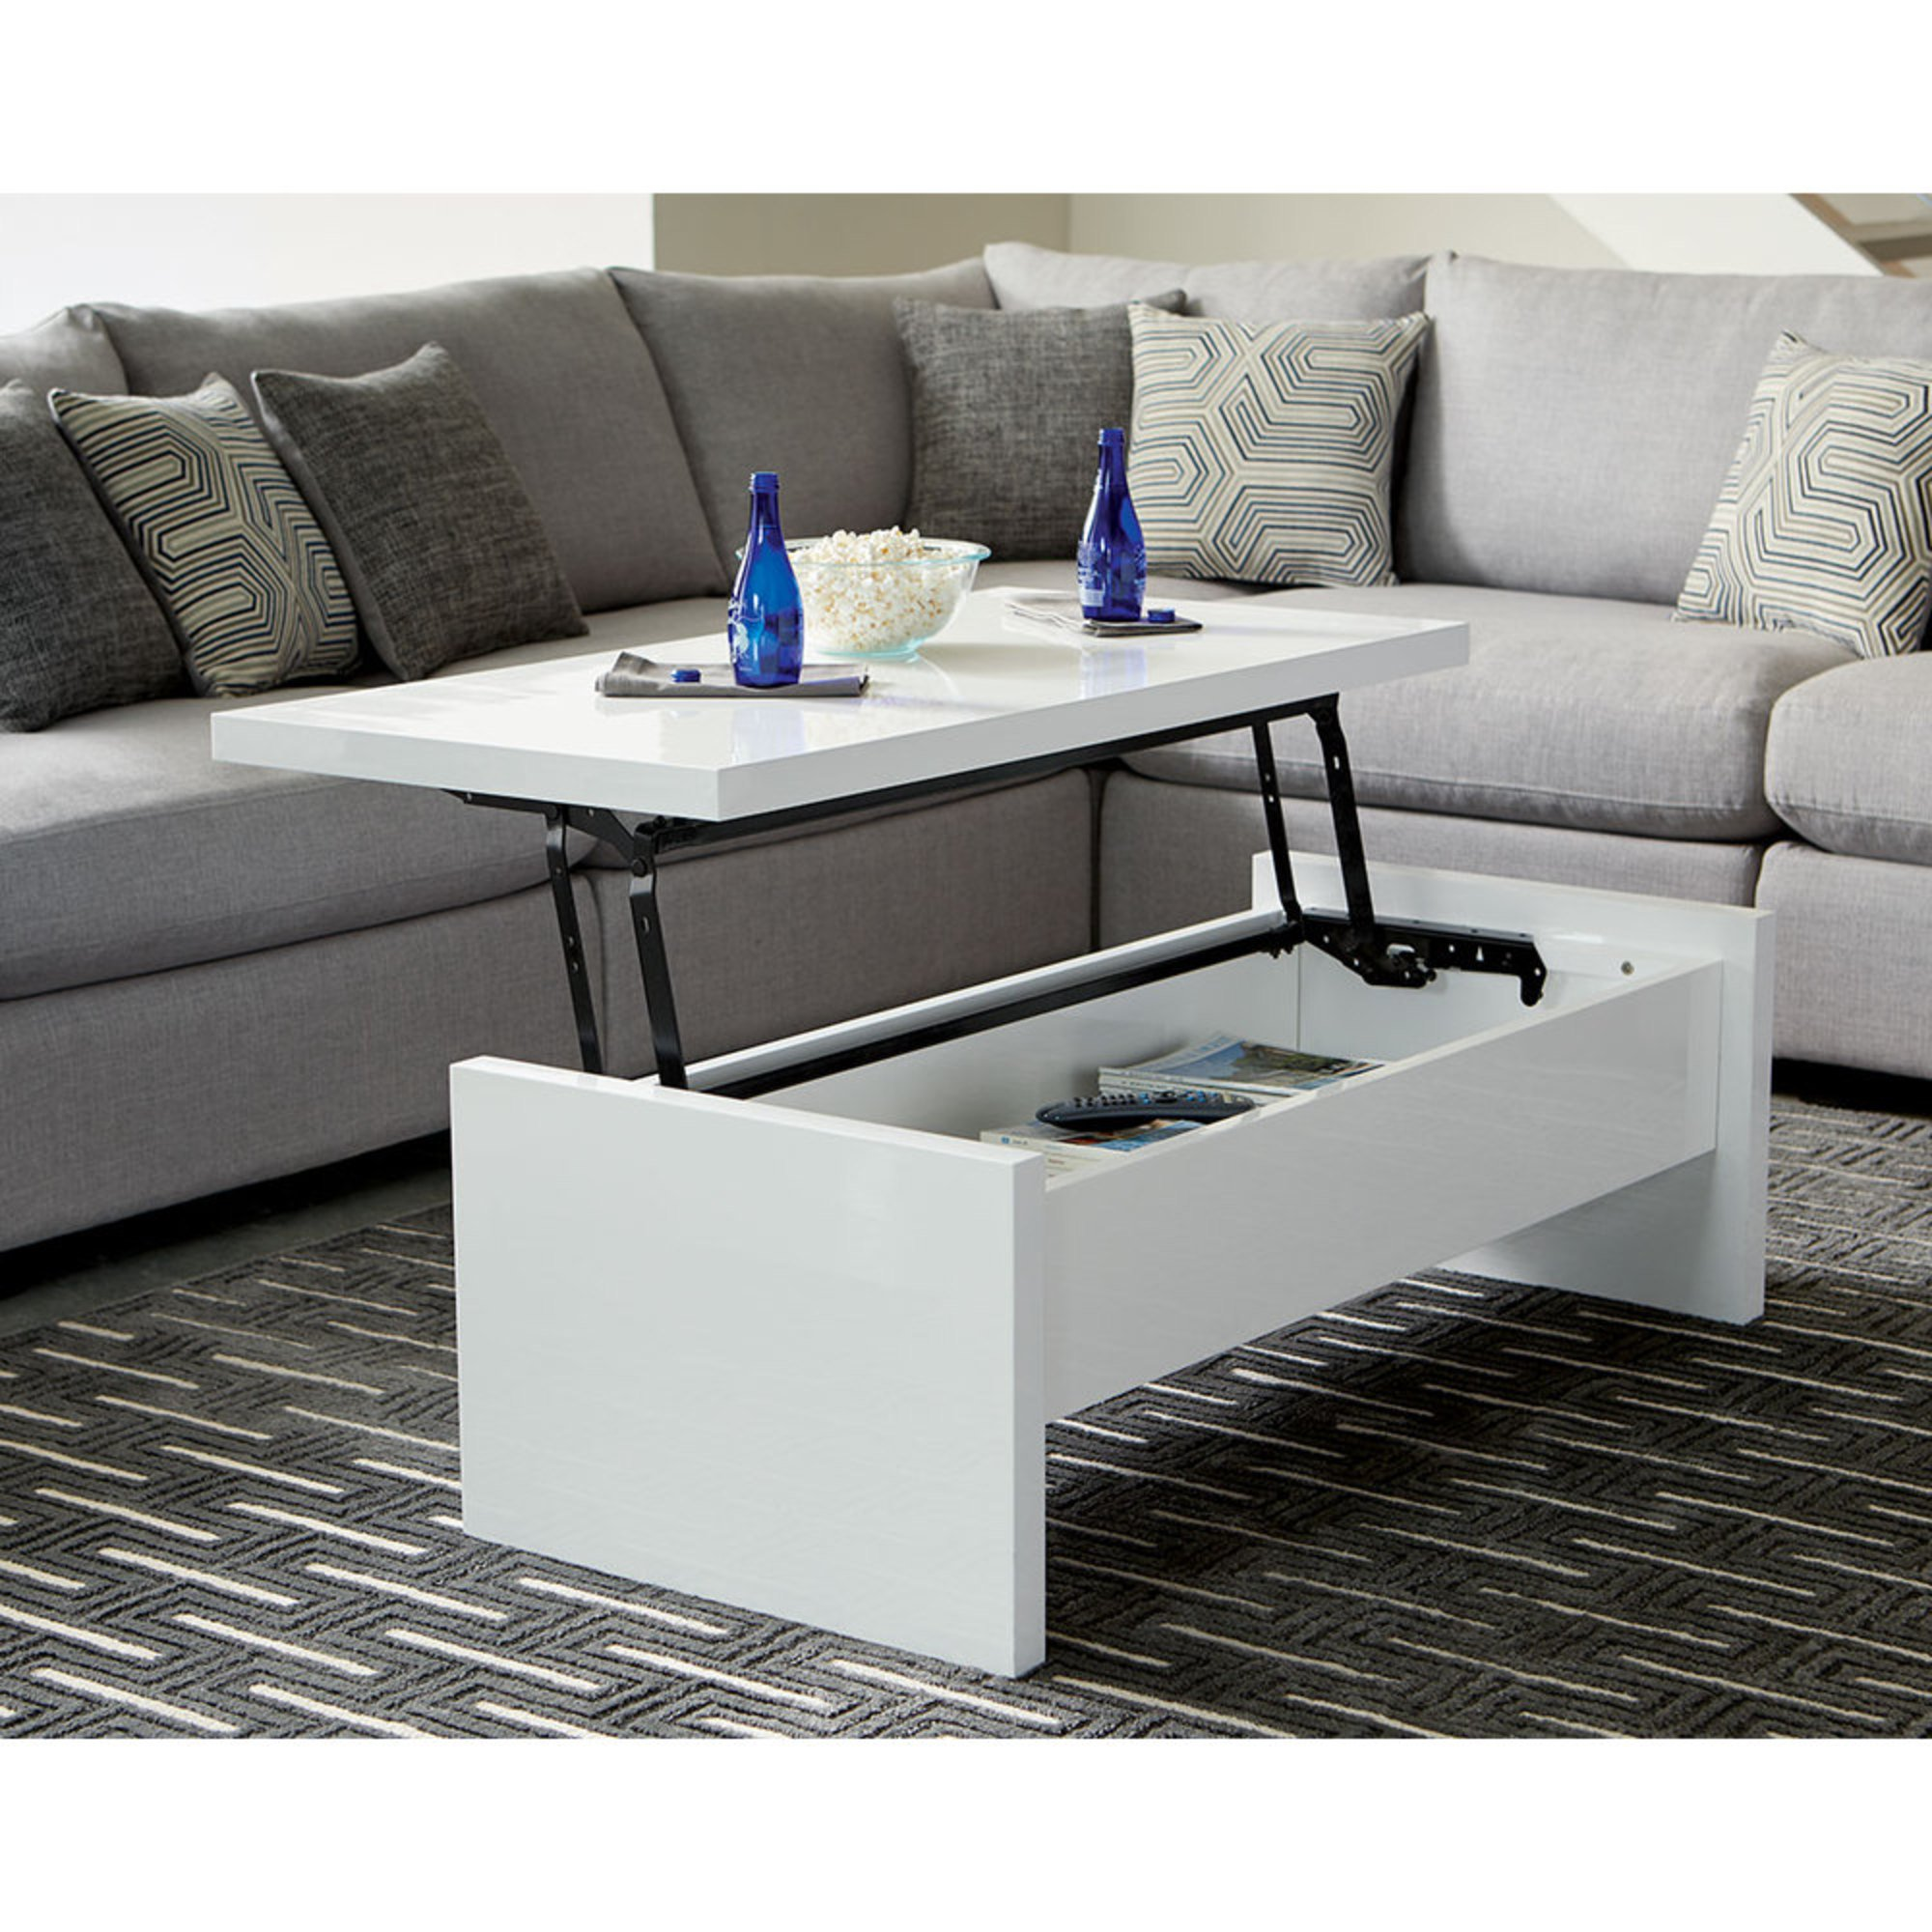 Scott Living Lift Top Coffee Table 721248 Coffee Cocktail